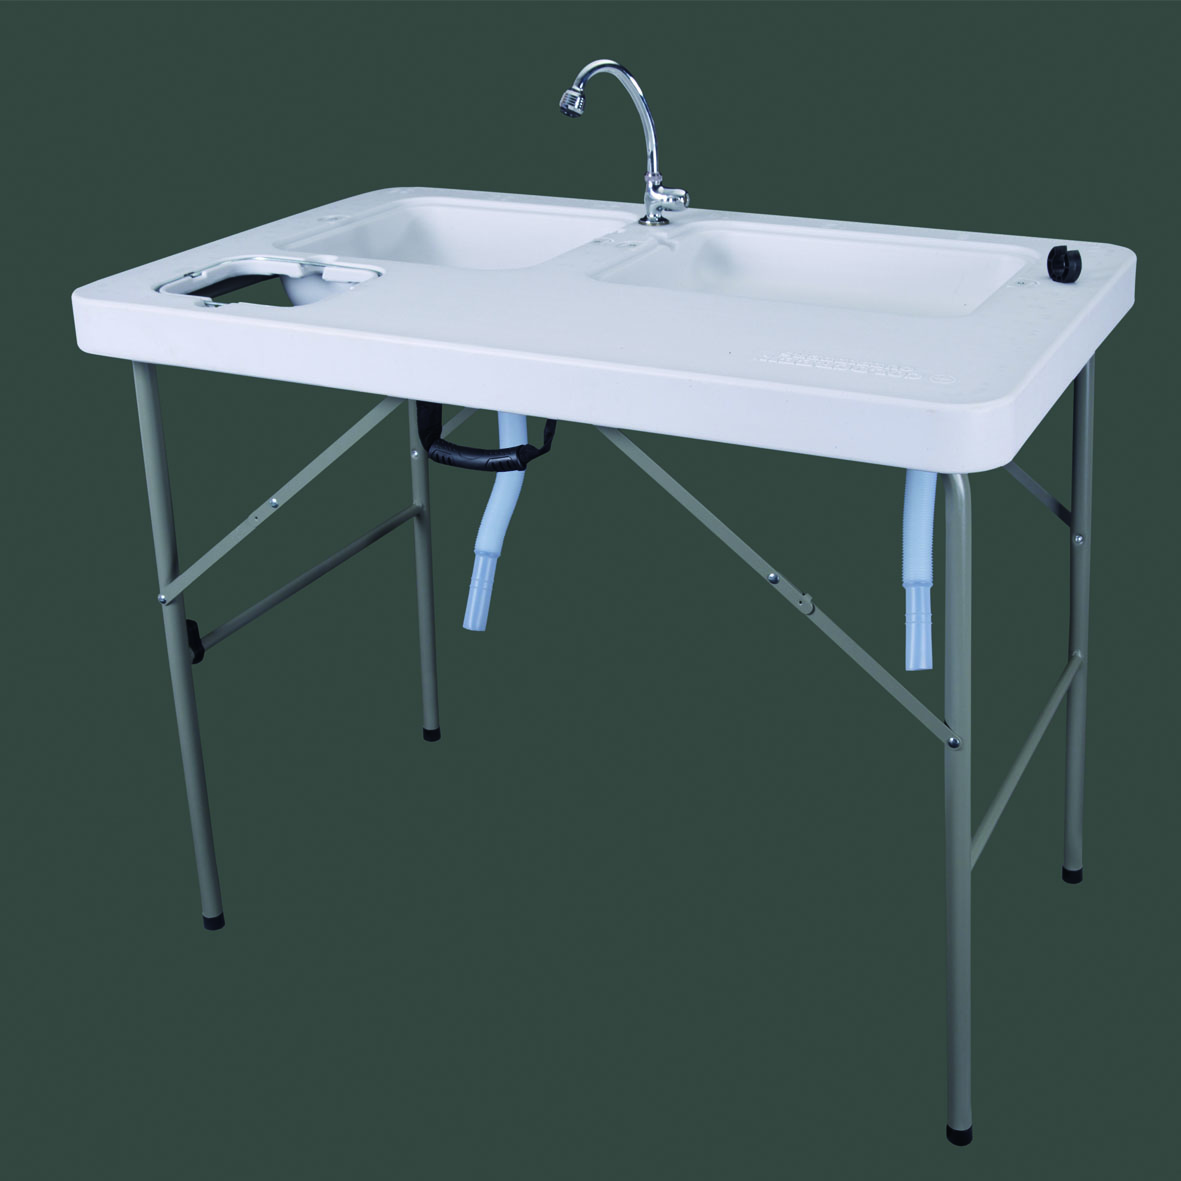 Folding Portable Fish Fillet /& Hunting /& Cutting  Leisure Table with Sink Faucet